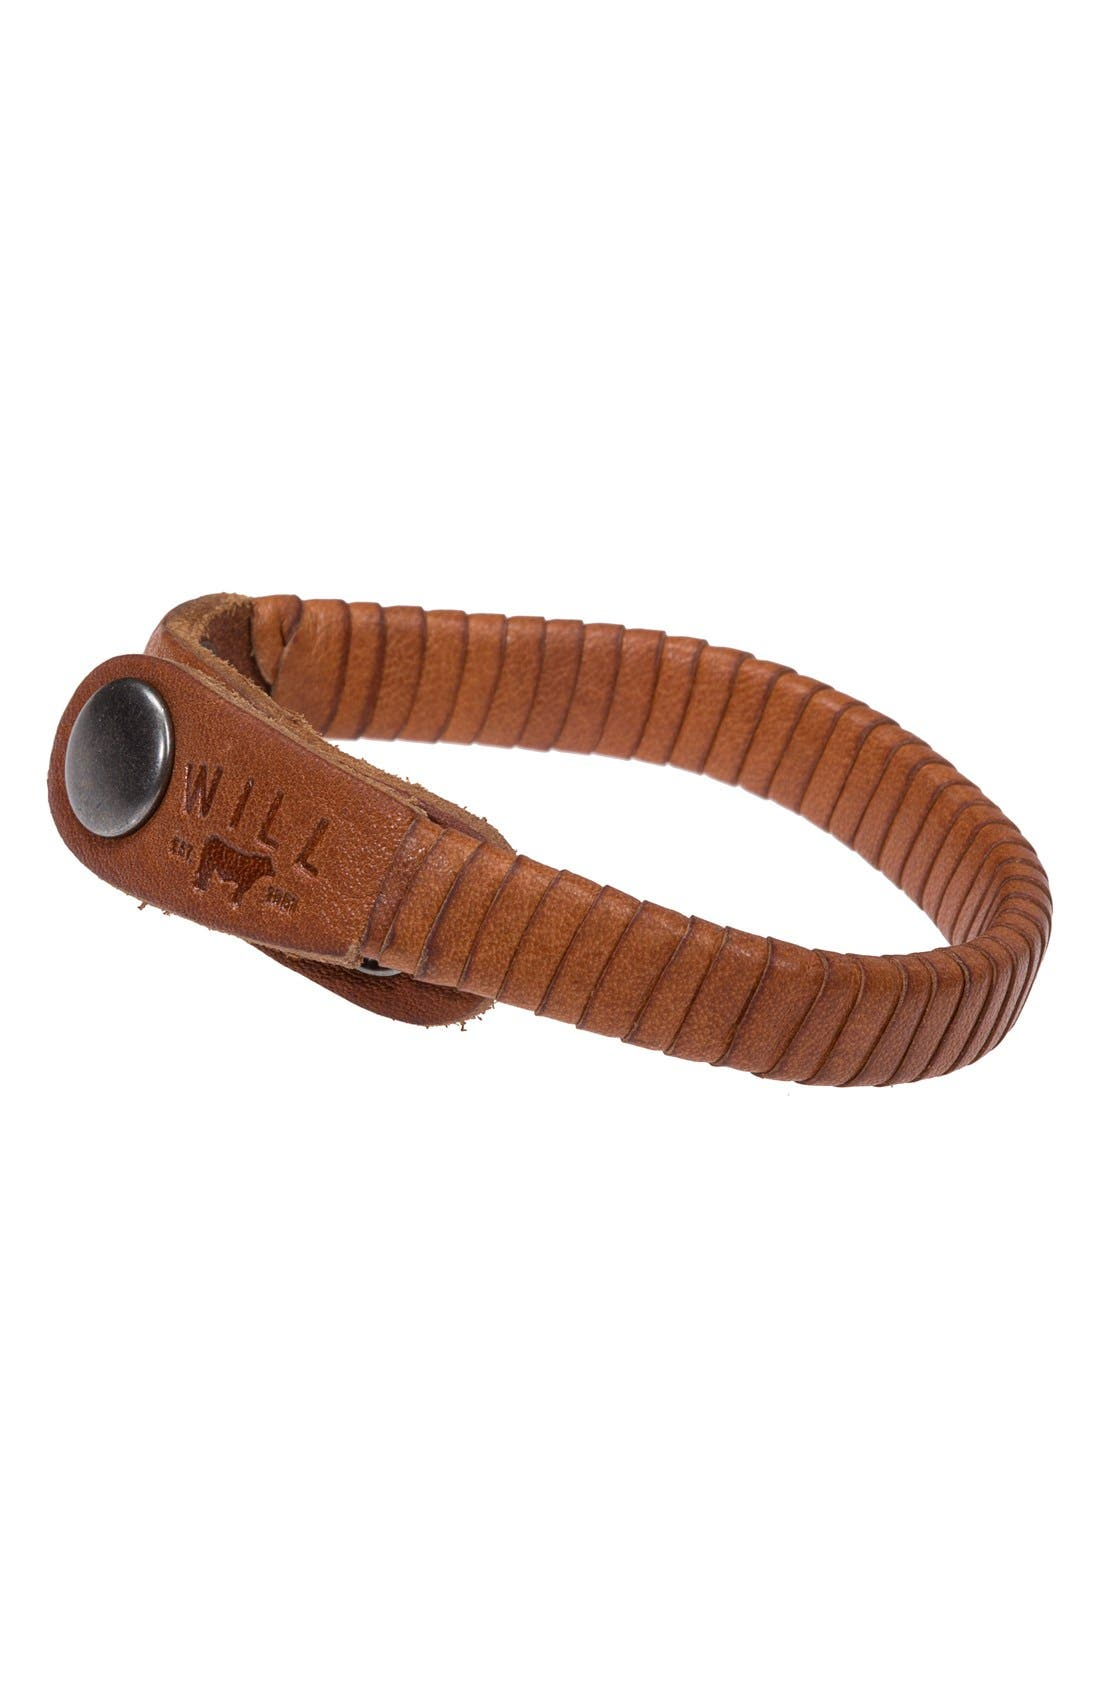 Main Image - Will Leather Goods 'Peddler' Bracelet